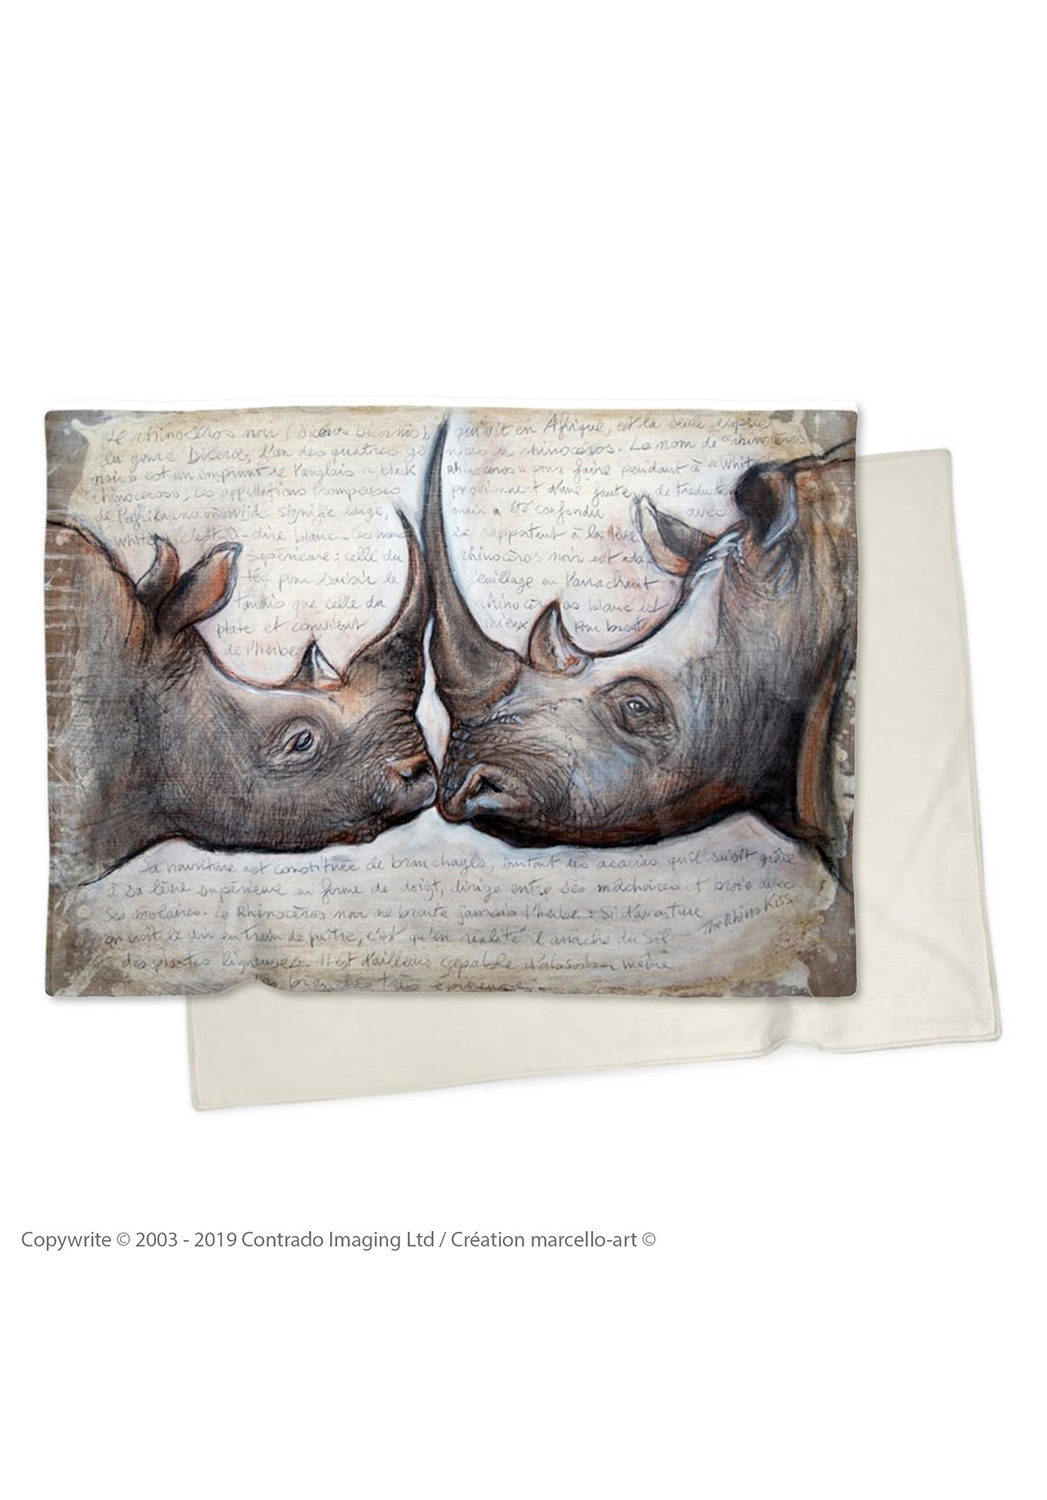 Marcello-art: Plaid Plaid 106 Rhino Kiss